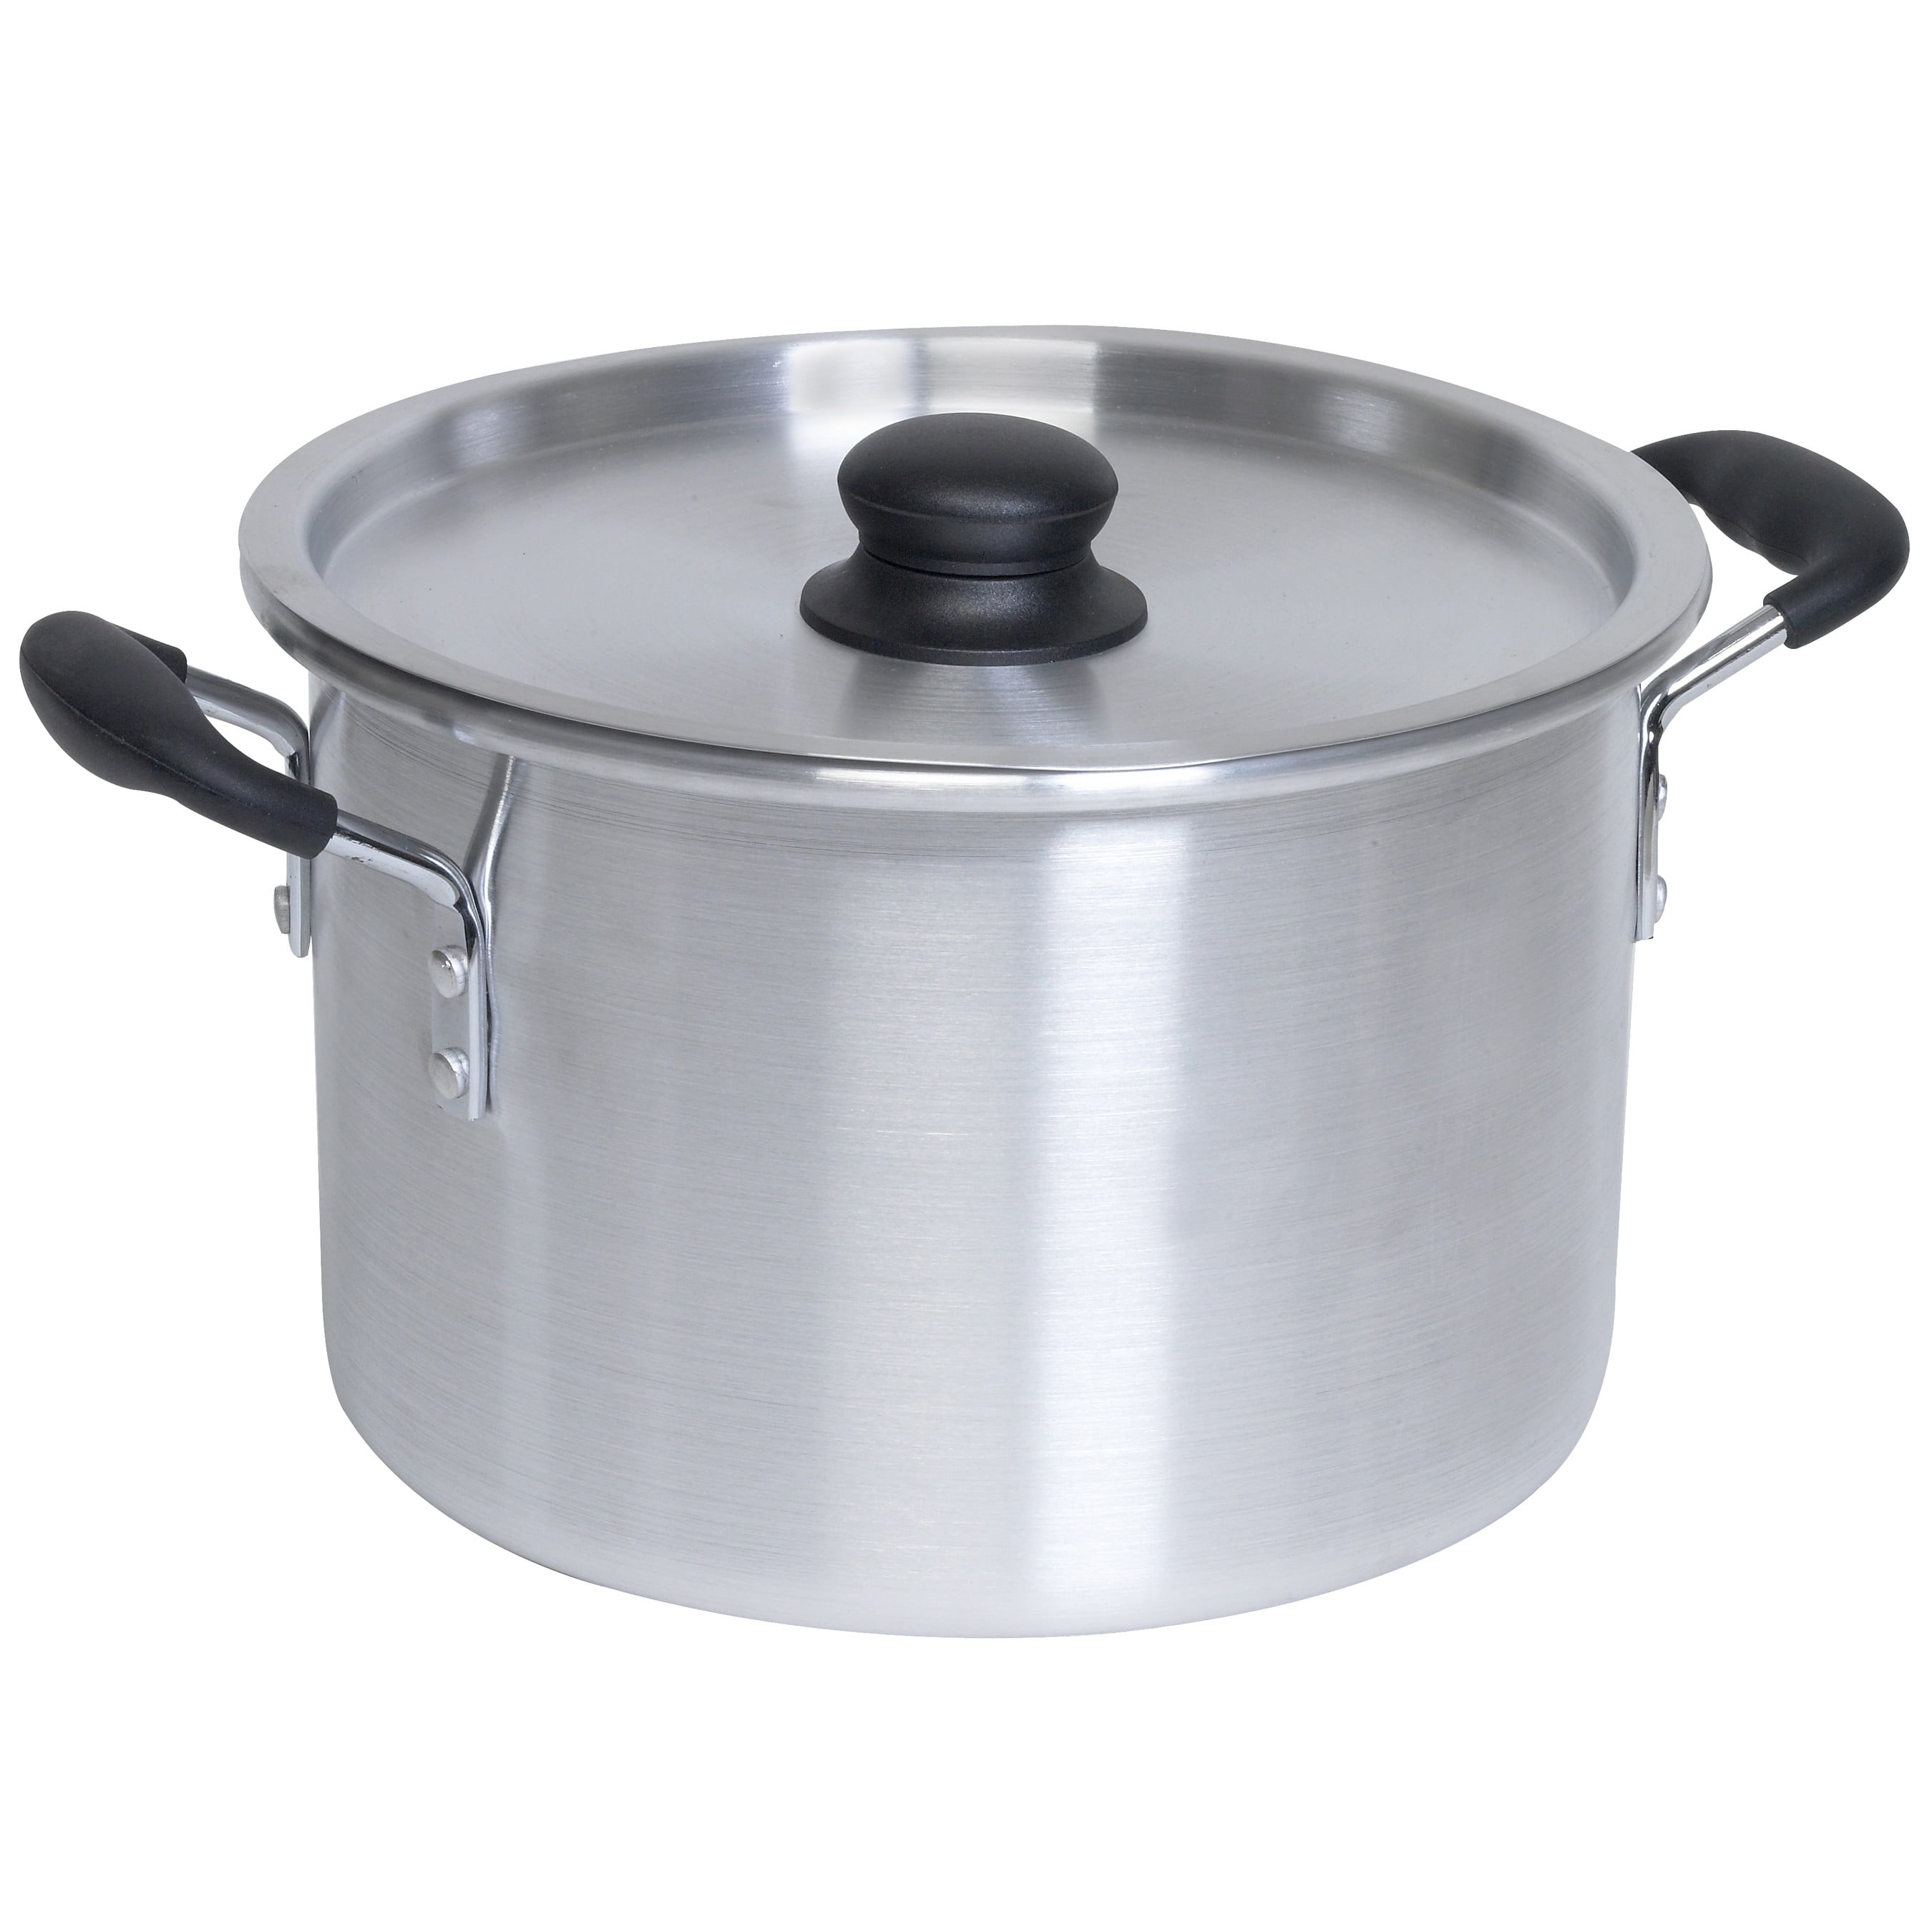 IMUSA Aluminum Stock Pot With Lid 8 Quart Silver